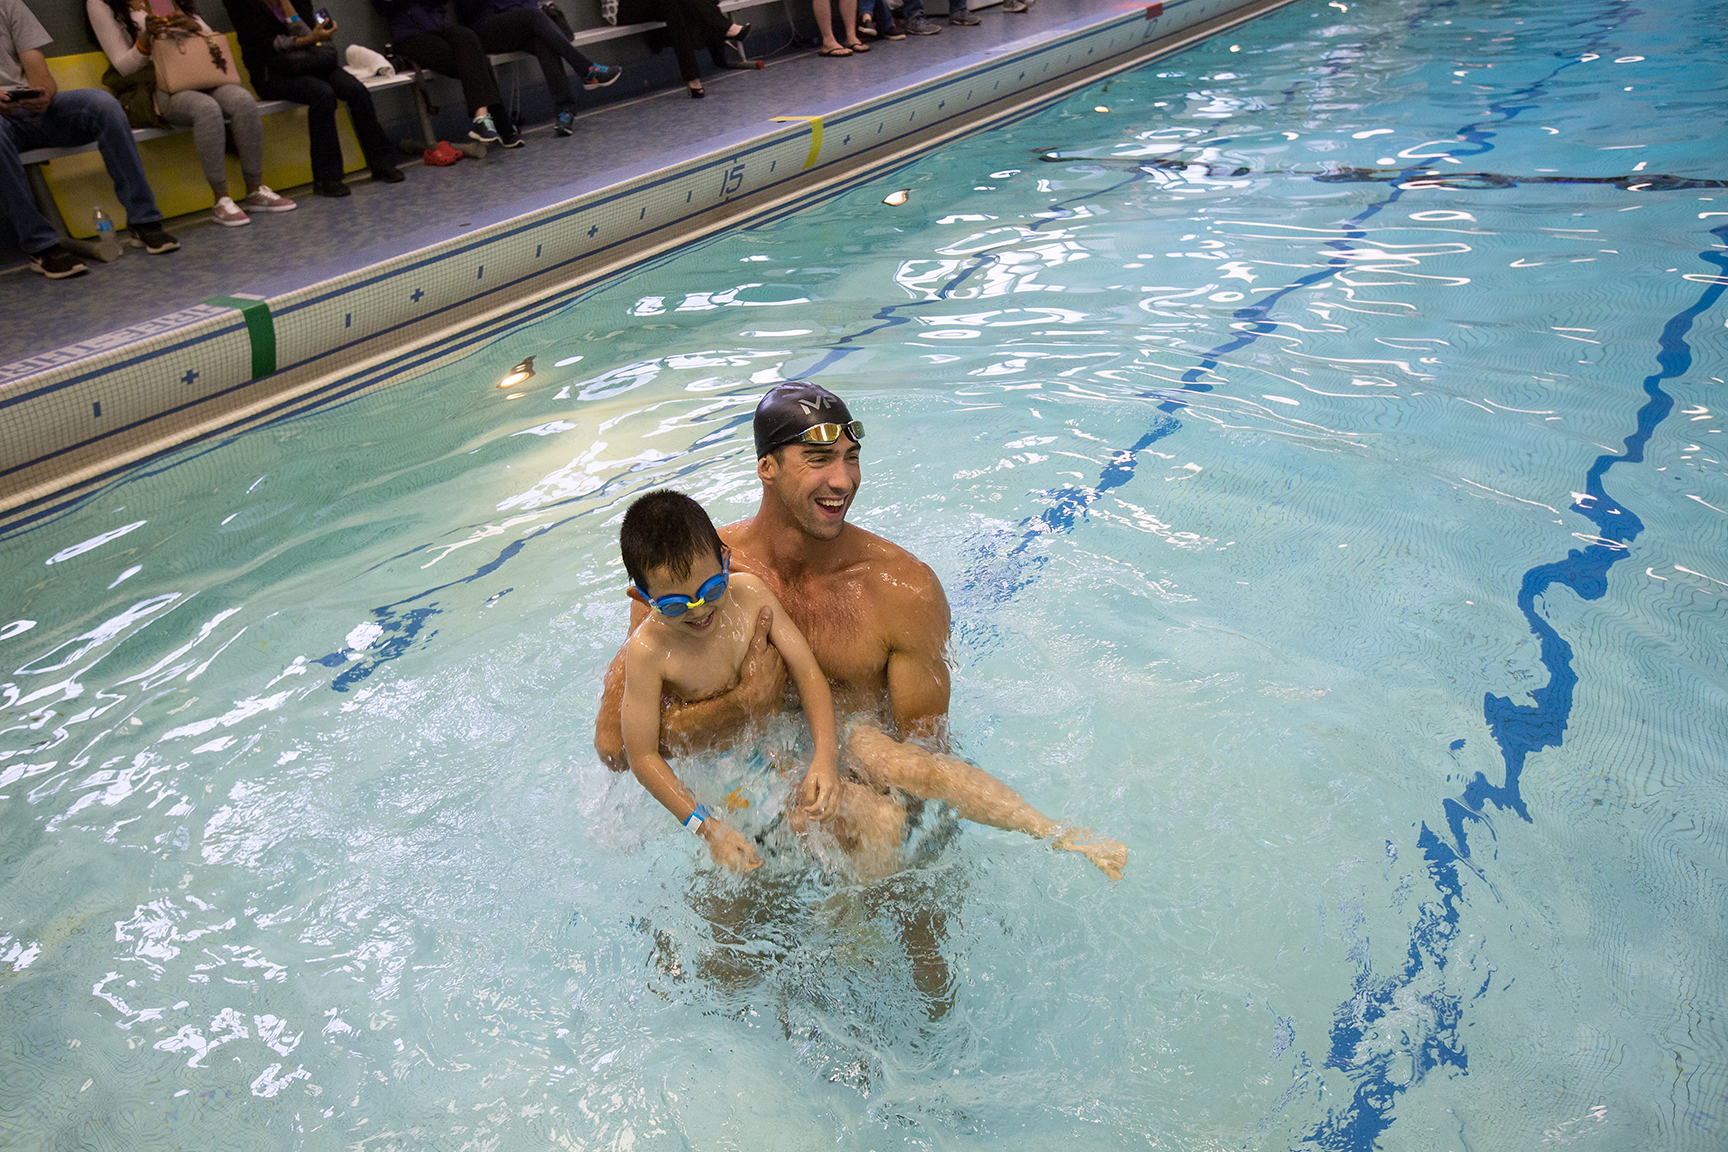 Michael Phelps in the pool holding a boy